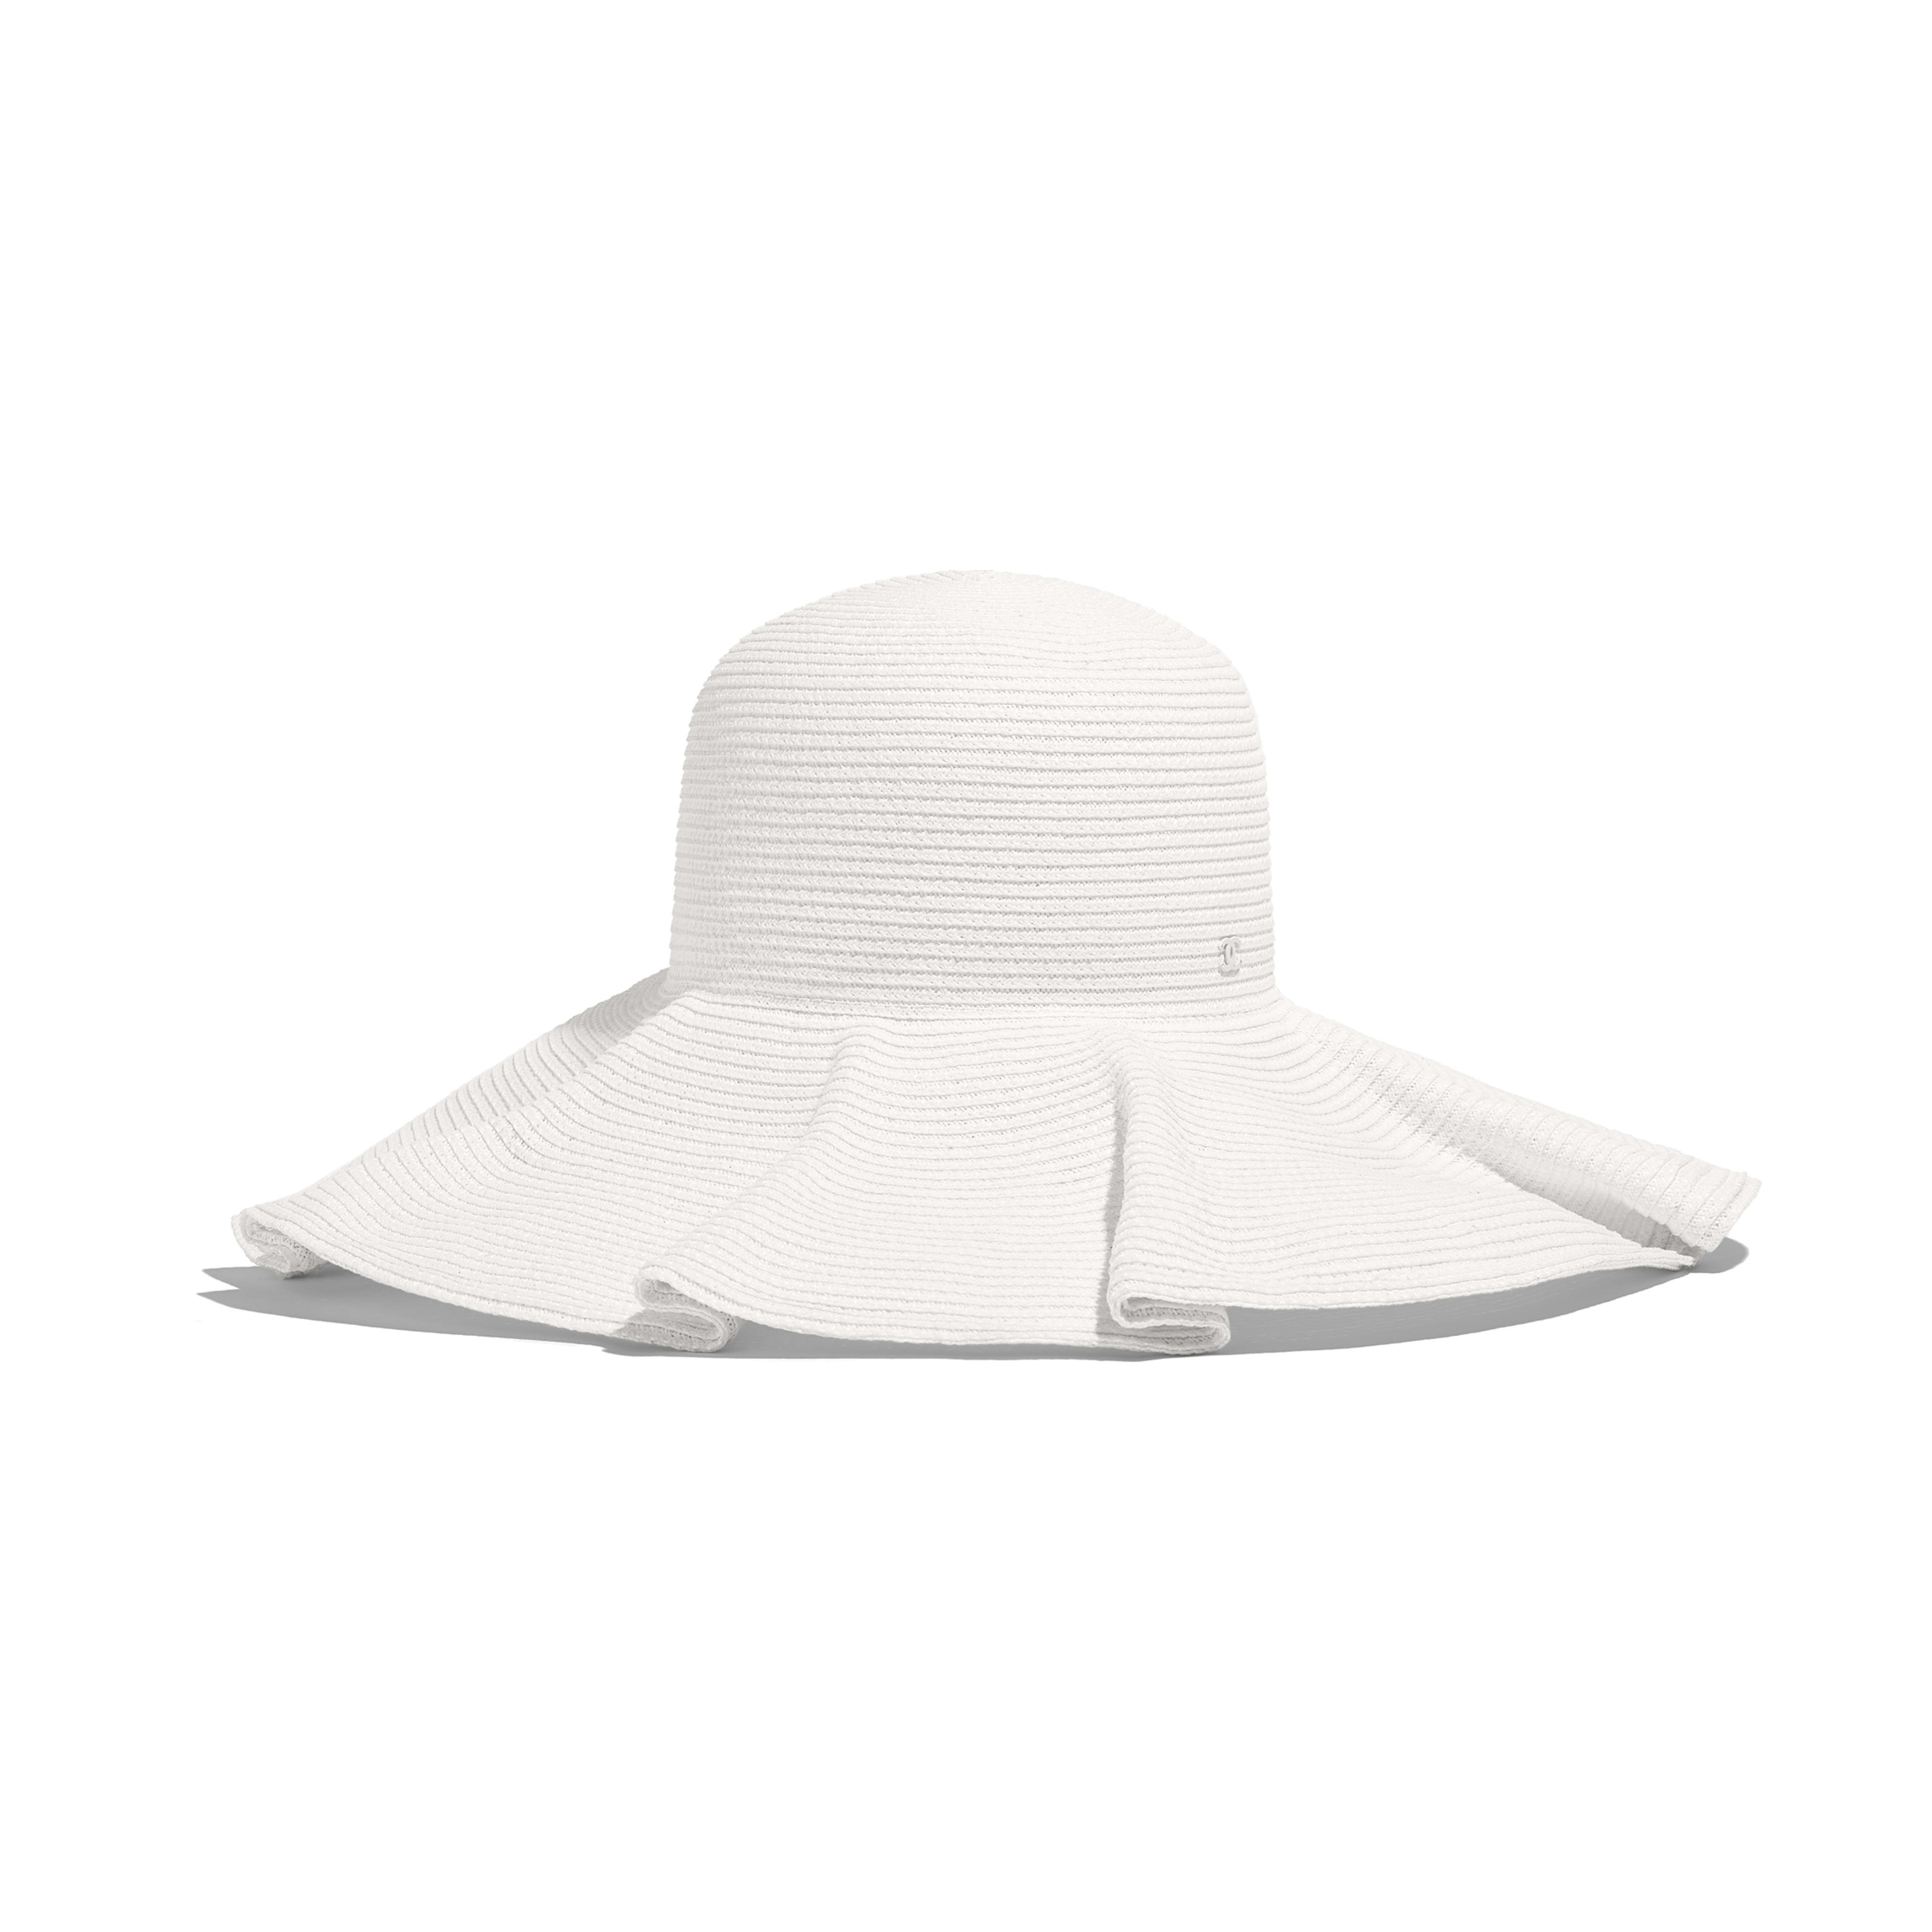 Hat - Ivory - Straw - Default view - see full sized version ... be53f3dbd64